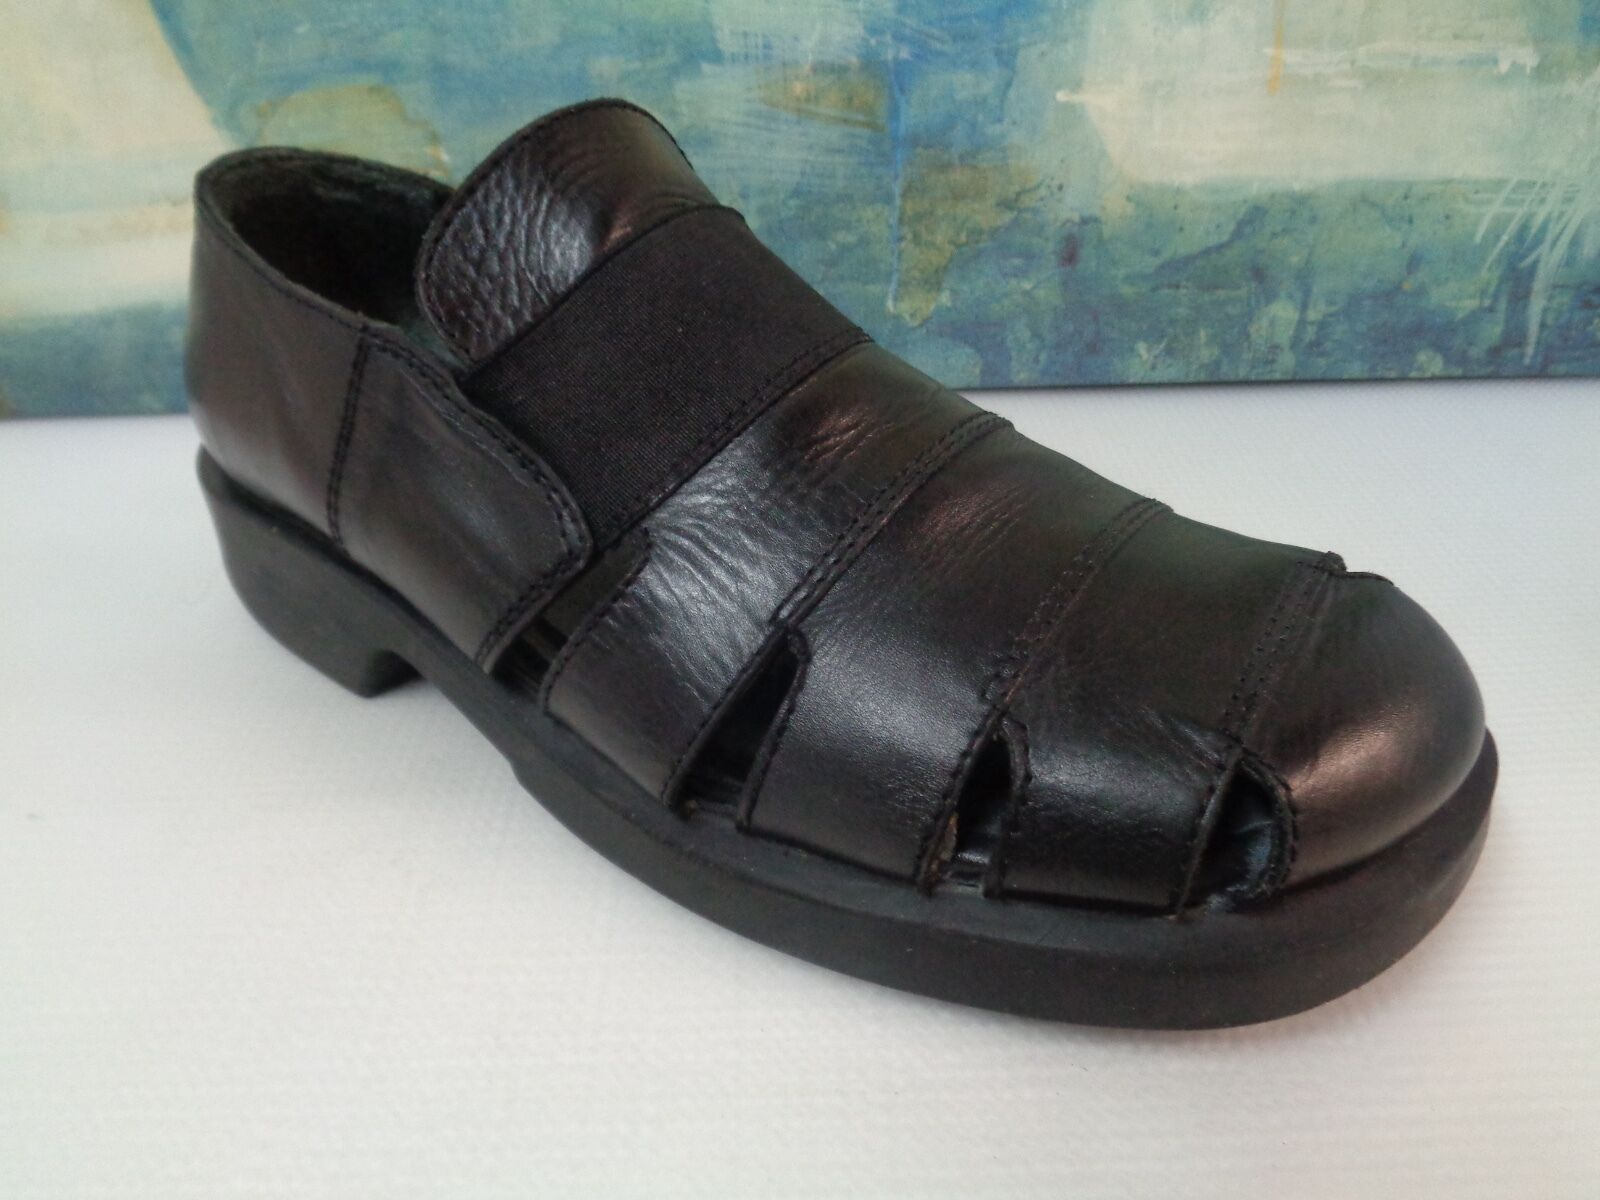 GBX LEATHER MEN'S DRESS SANDAL SIZE 11 D made in Italy